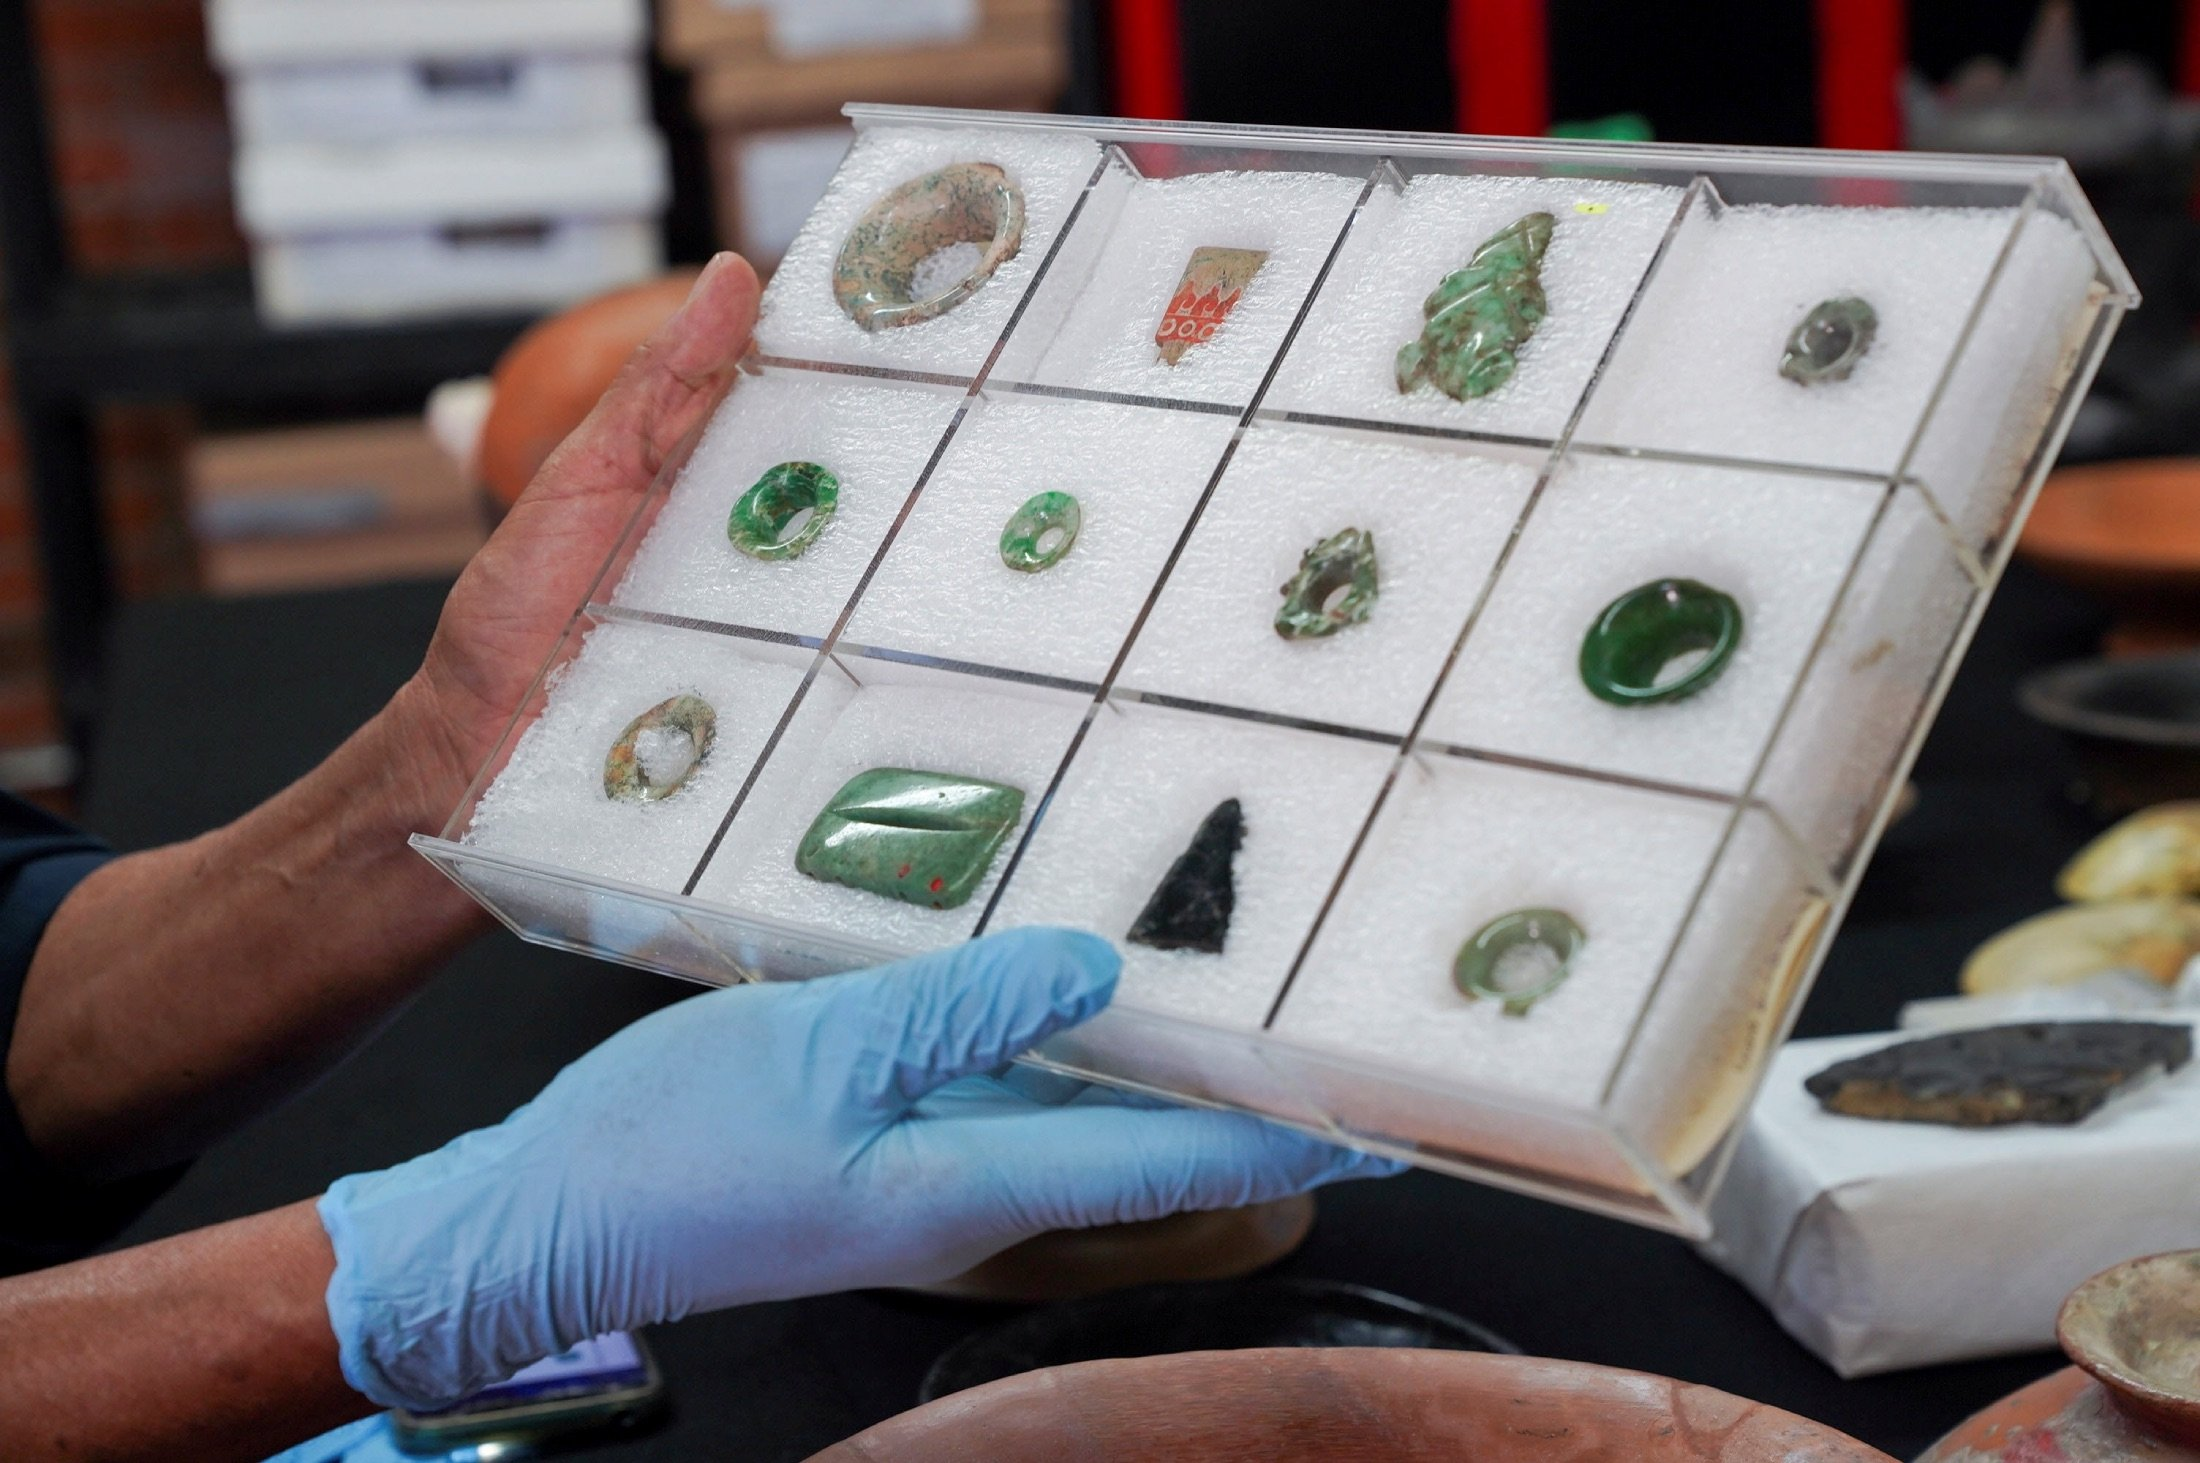 Archaeologist Sergio Gomez displays jade jewelry, including ear spools and pendants, found inside a 2,000-year-old tunnel built under the ornate Feathered Serpent Pyramid, in the ruins of Teotihuacan, in San Juan Teotihuacan, Mexico, Aug. 12, 2021. (Reuters Photo)